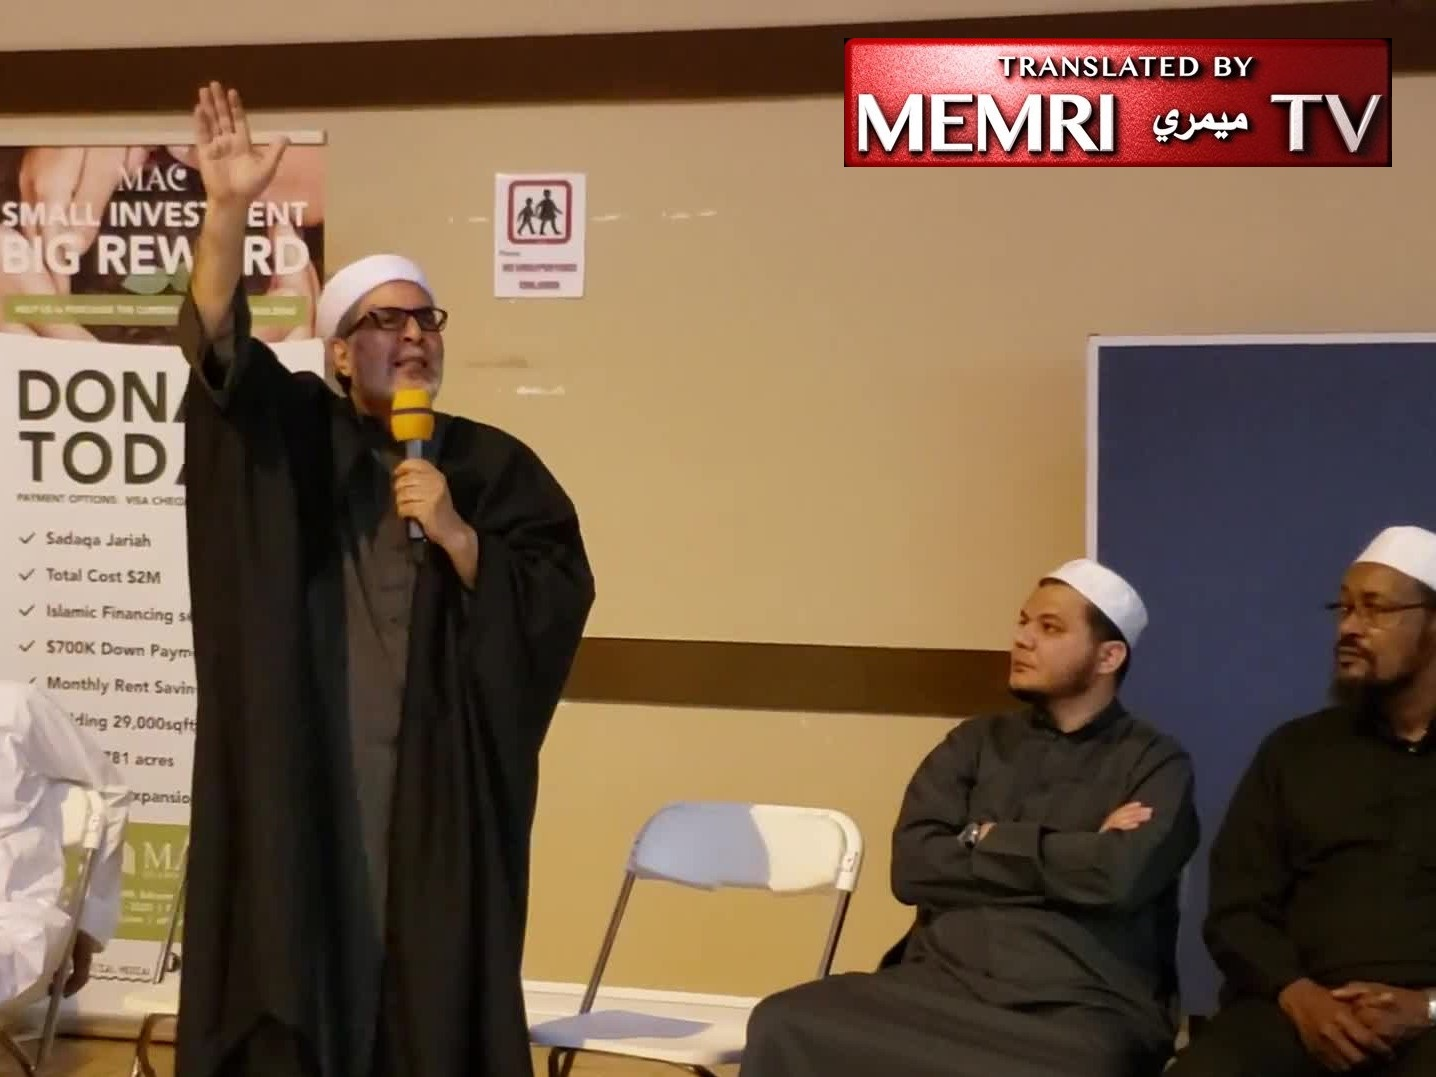 "In Morsi Eulogy, Canadian Imam Shaban Sherif Mady Calls Egyptian President Al-Sisi a ""Dwarf"" and a ""Zionist Collaborator,"" Says Allah Will Punish Him and Send Someone to Avenge the Martyrs"